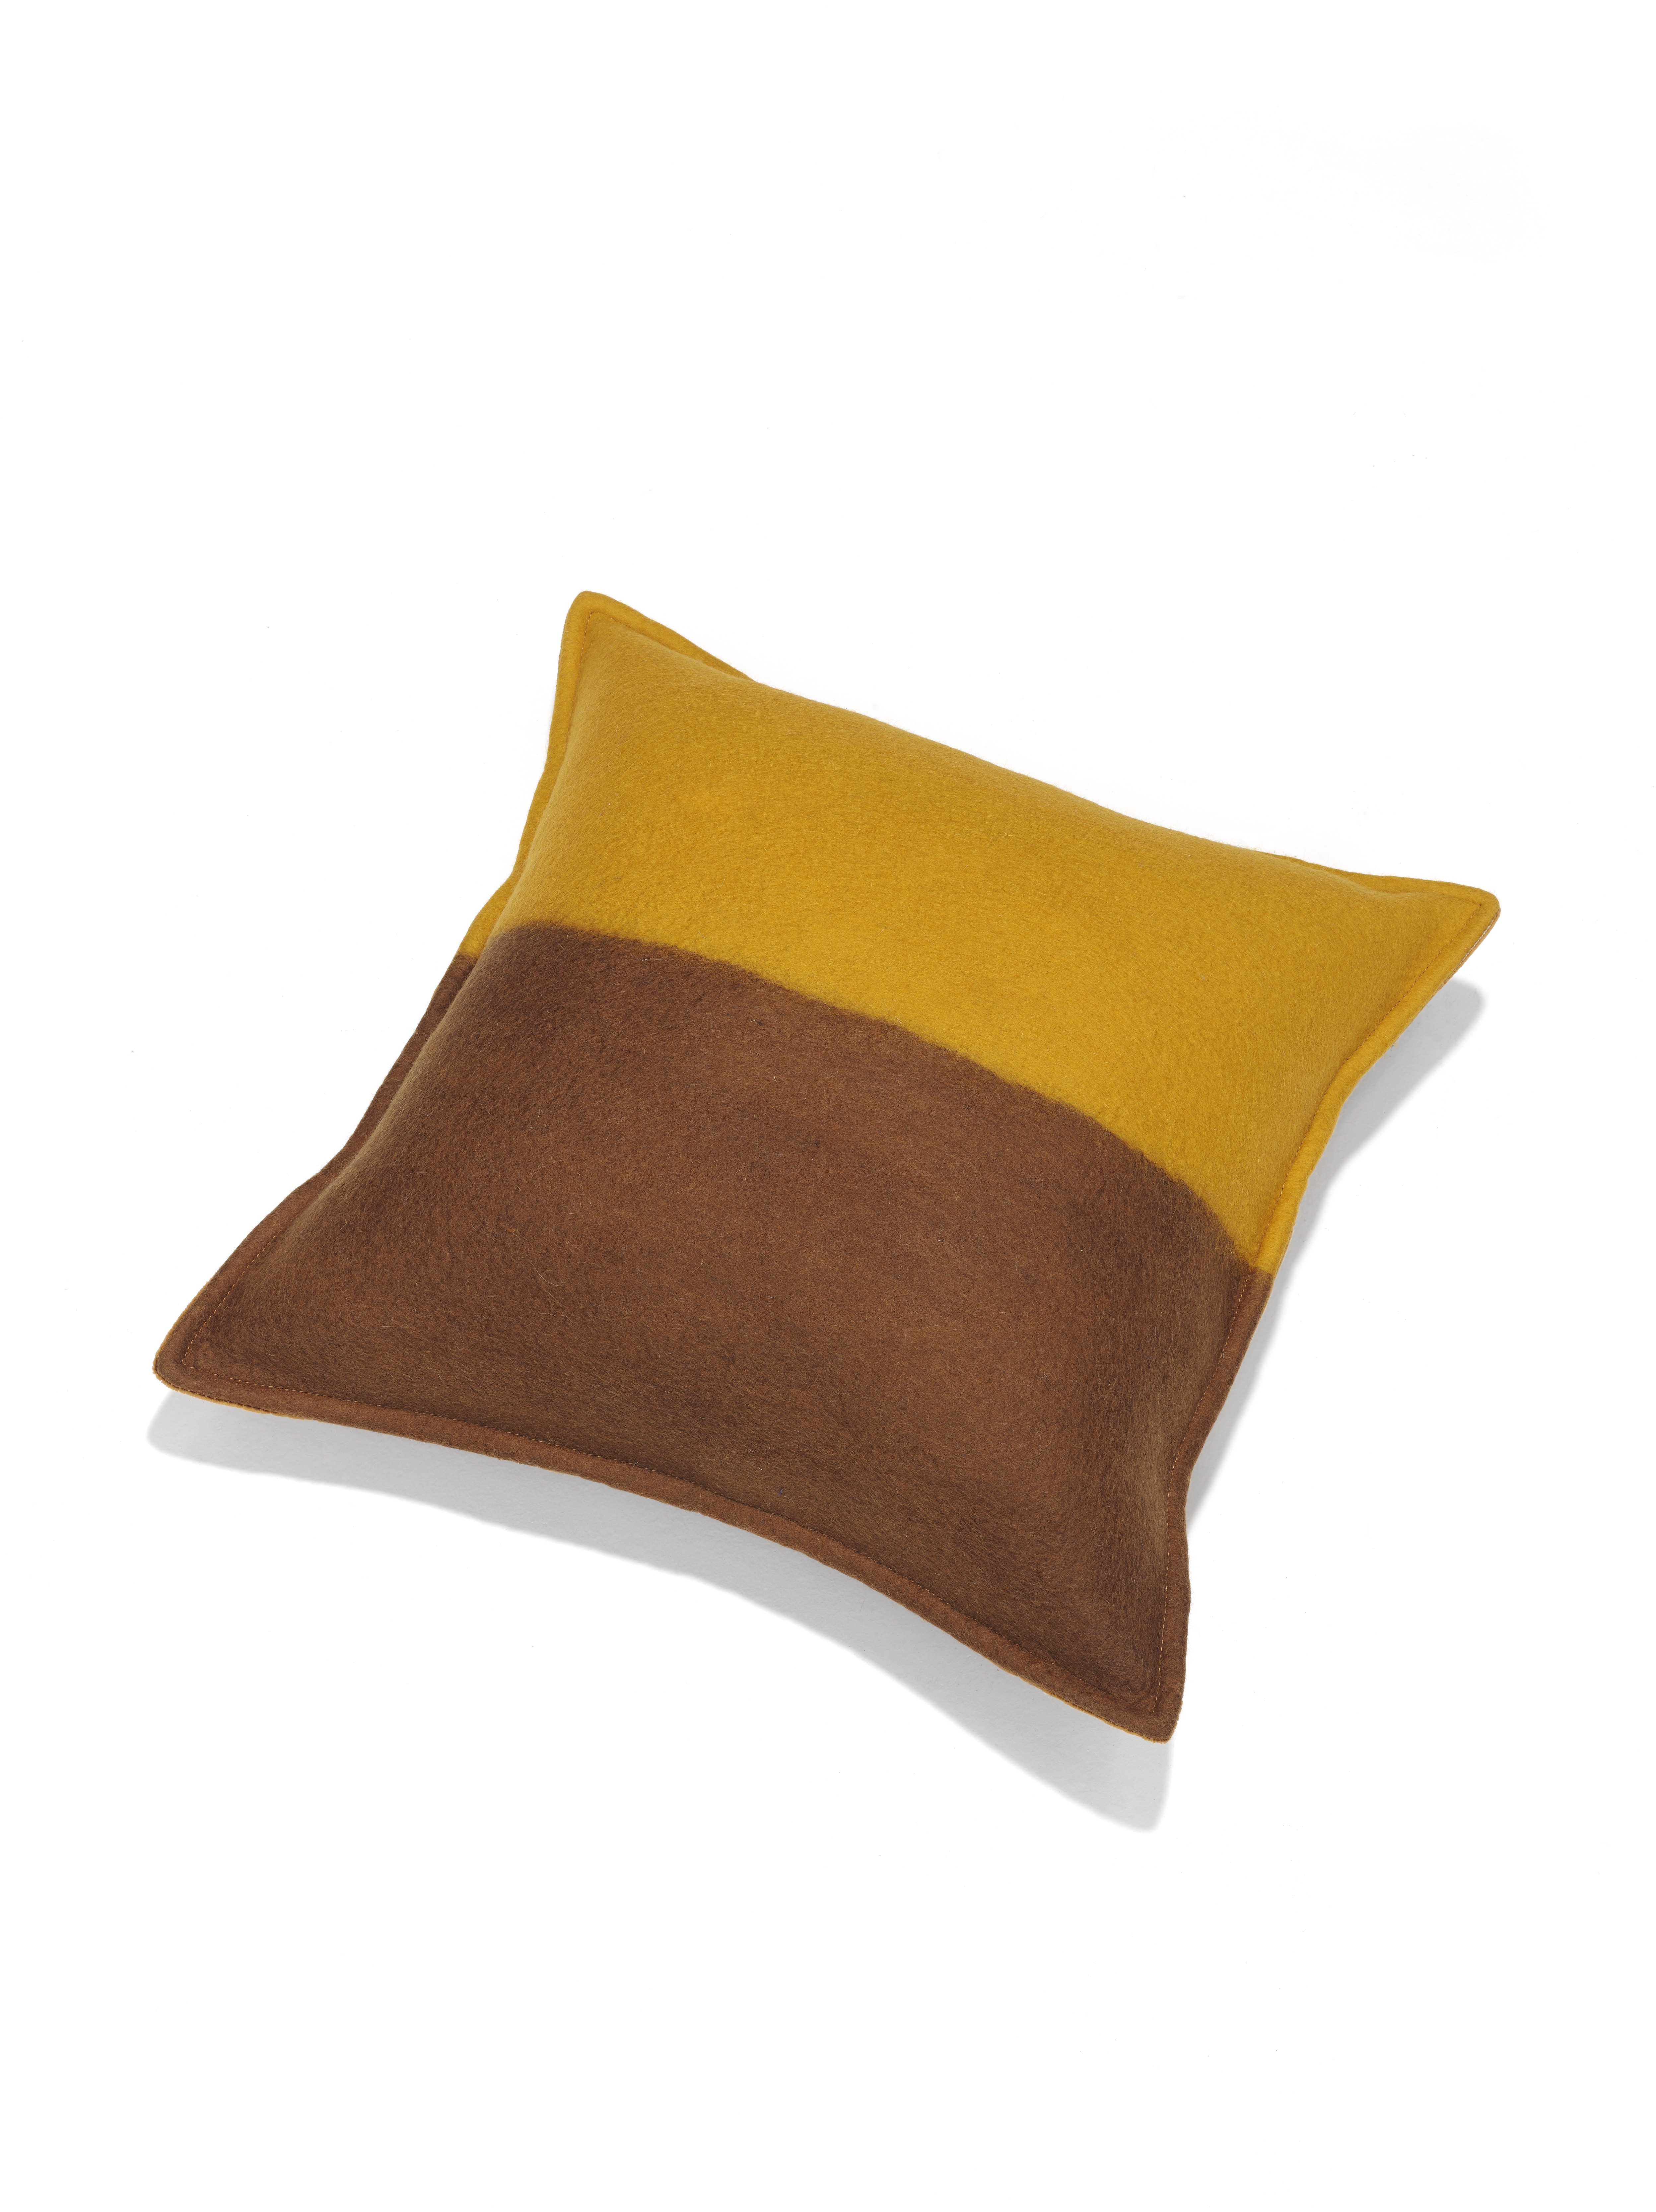 M_and_Otto for Linteloo Glow pillow brown yellow